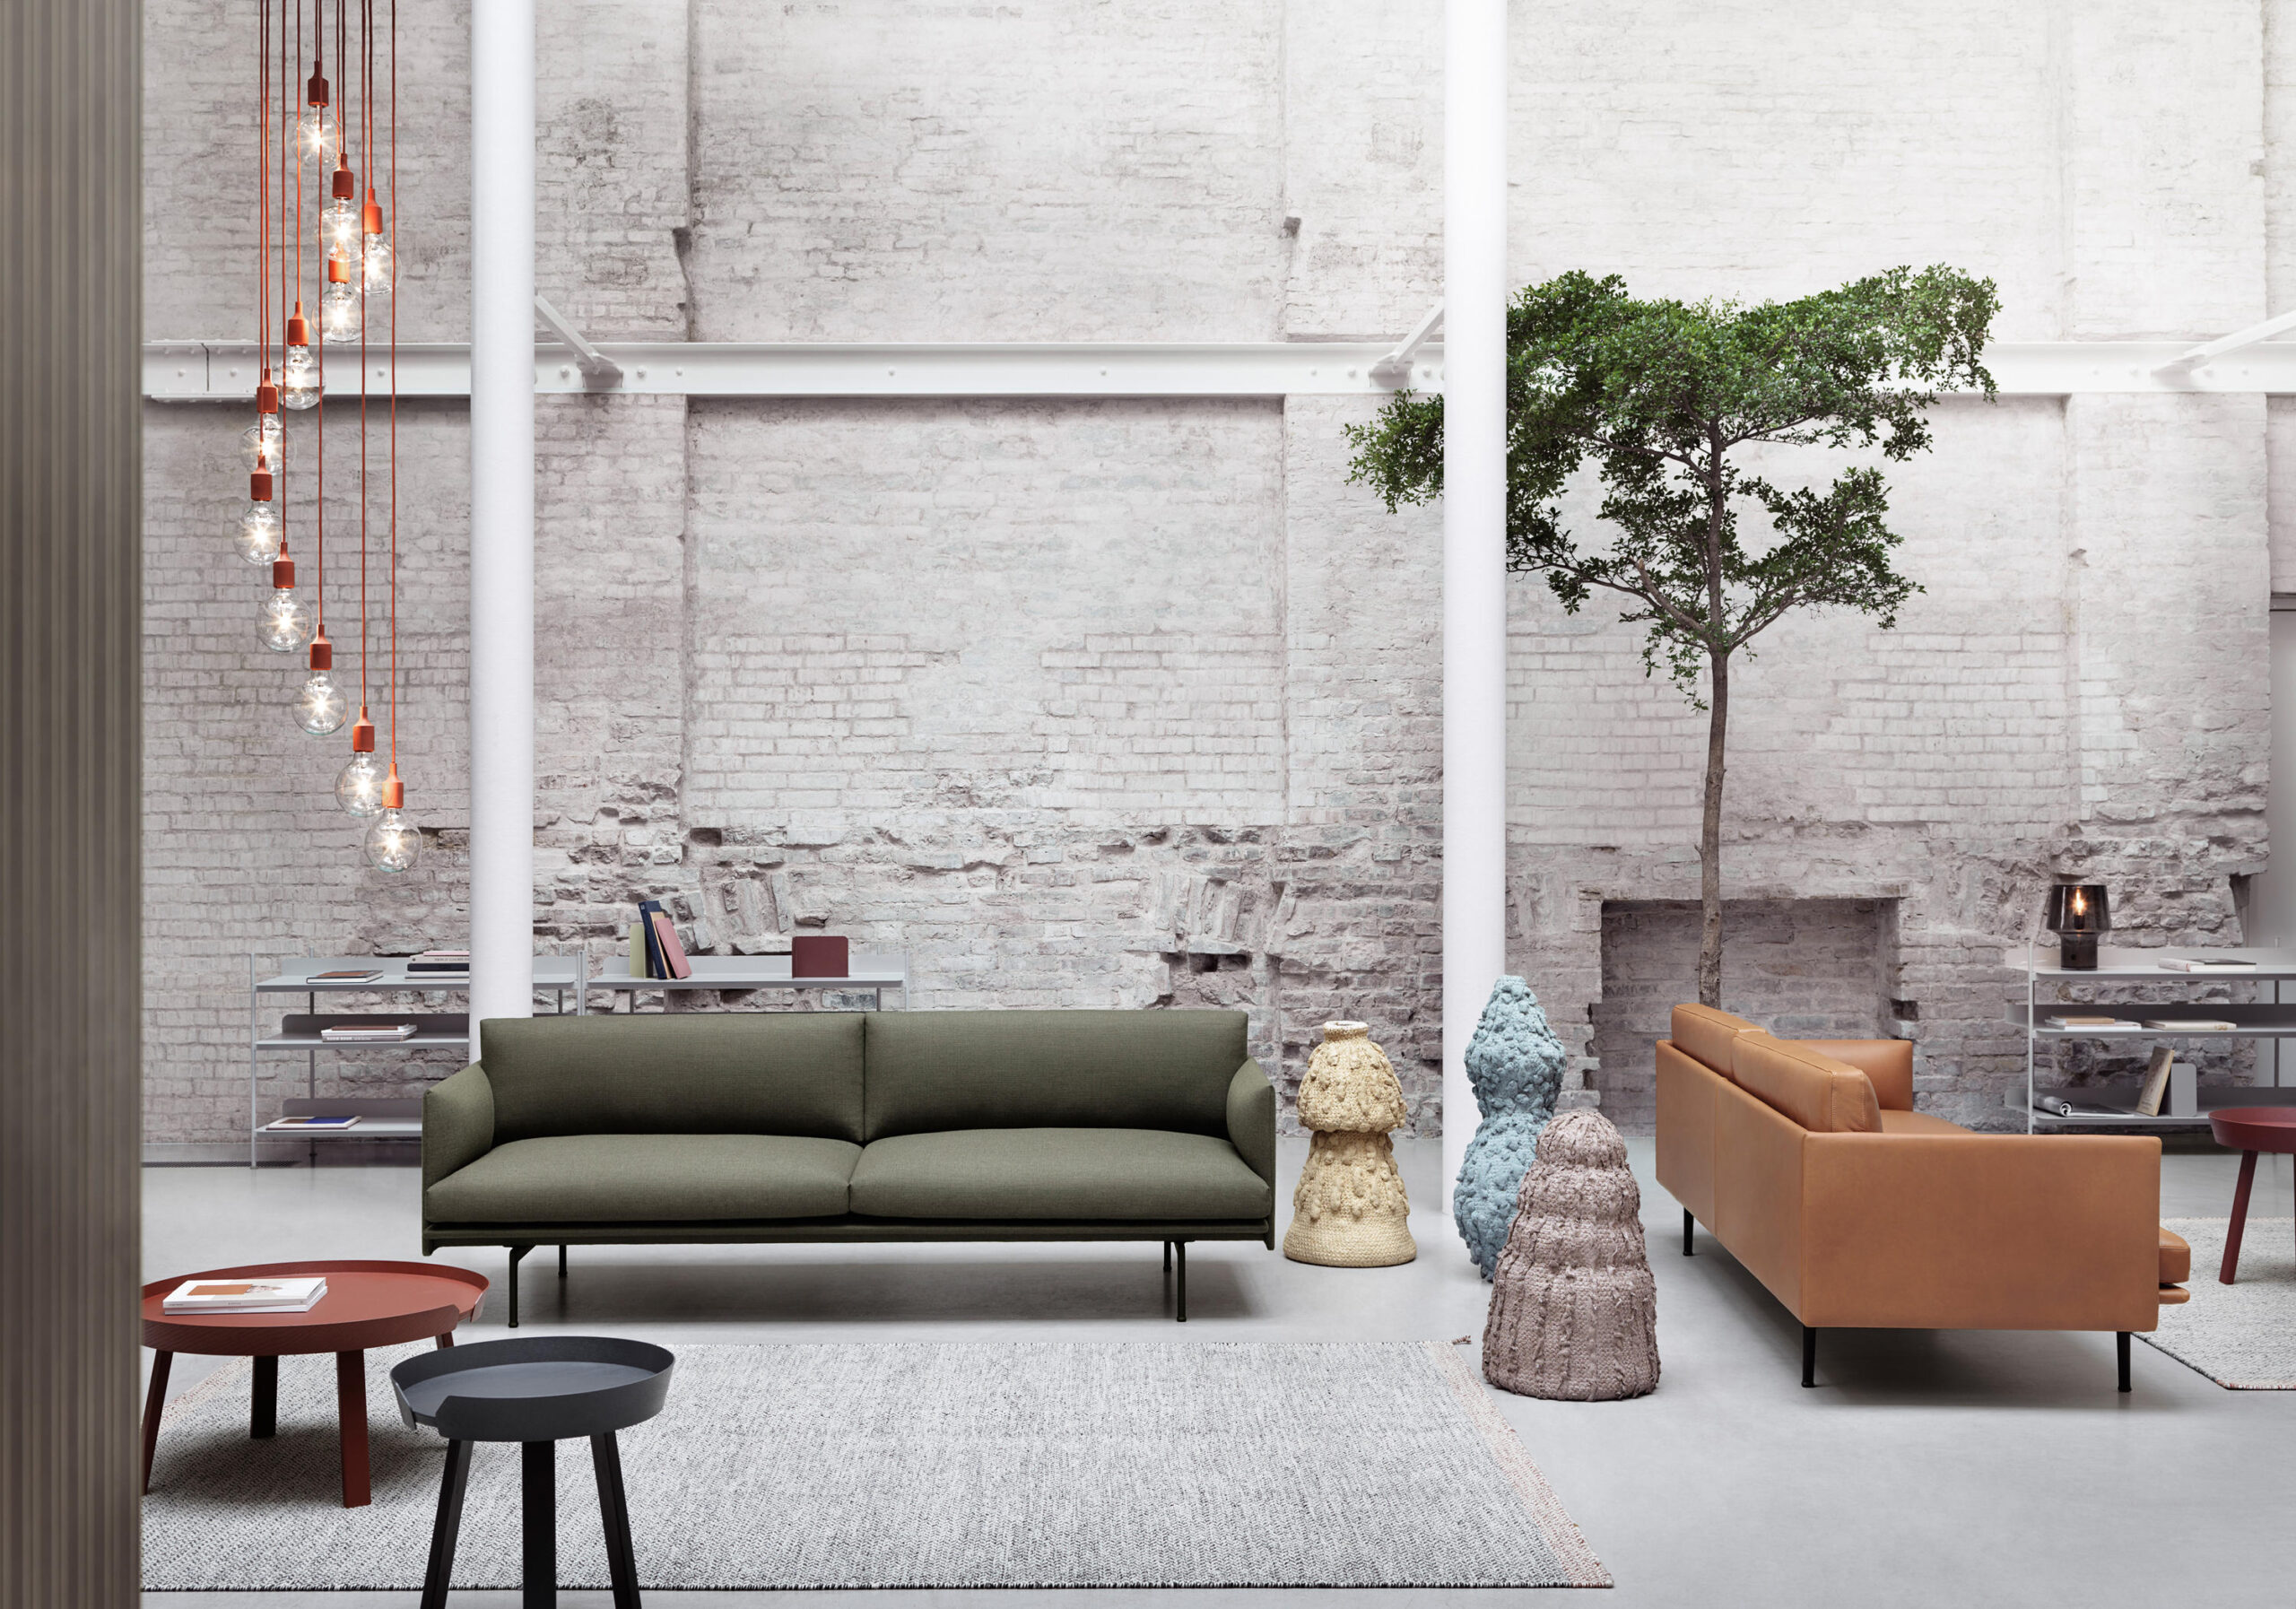 Full Size of Muuto Sofa Outline 3 Seater Furniture Sofabord Cecilie Manz Connect 2 Chaise Longue Leather Rest Uk Compose Review Dba Architonic Bunt Hussen Für 5 Sitzer Sofa Muuto Sofa